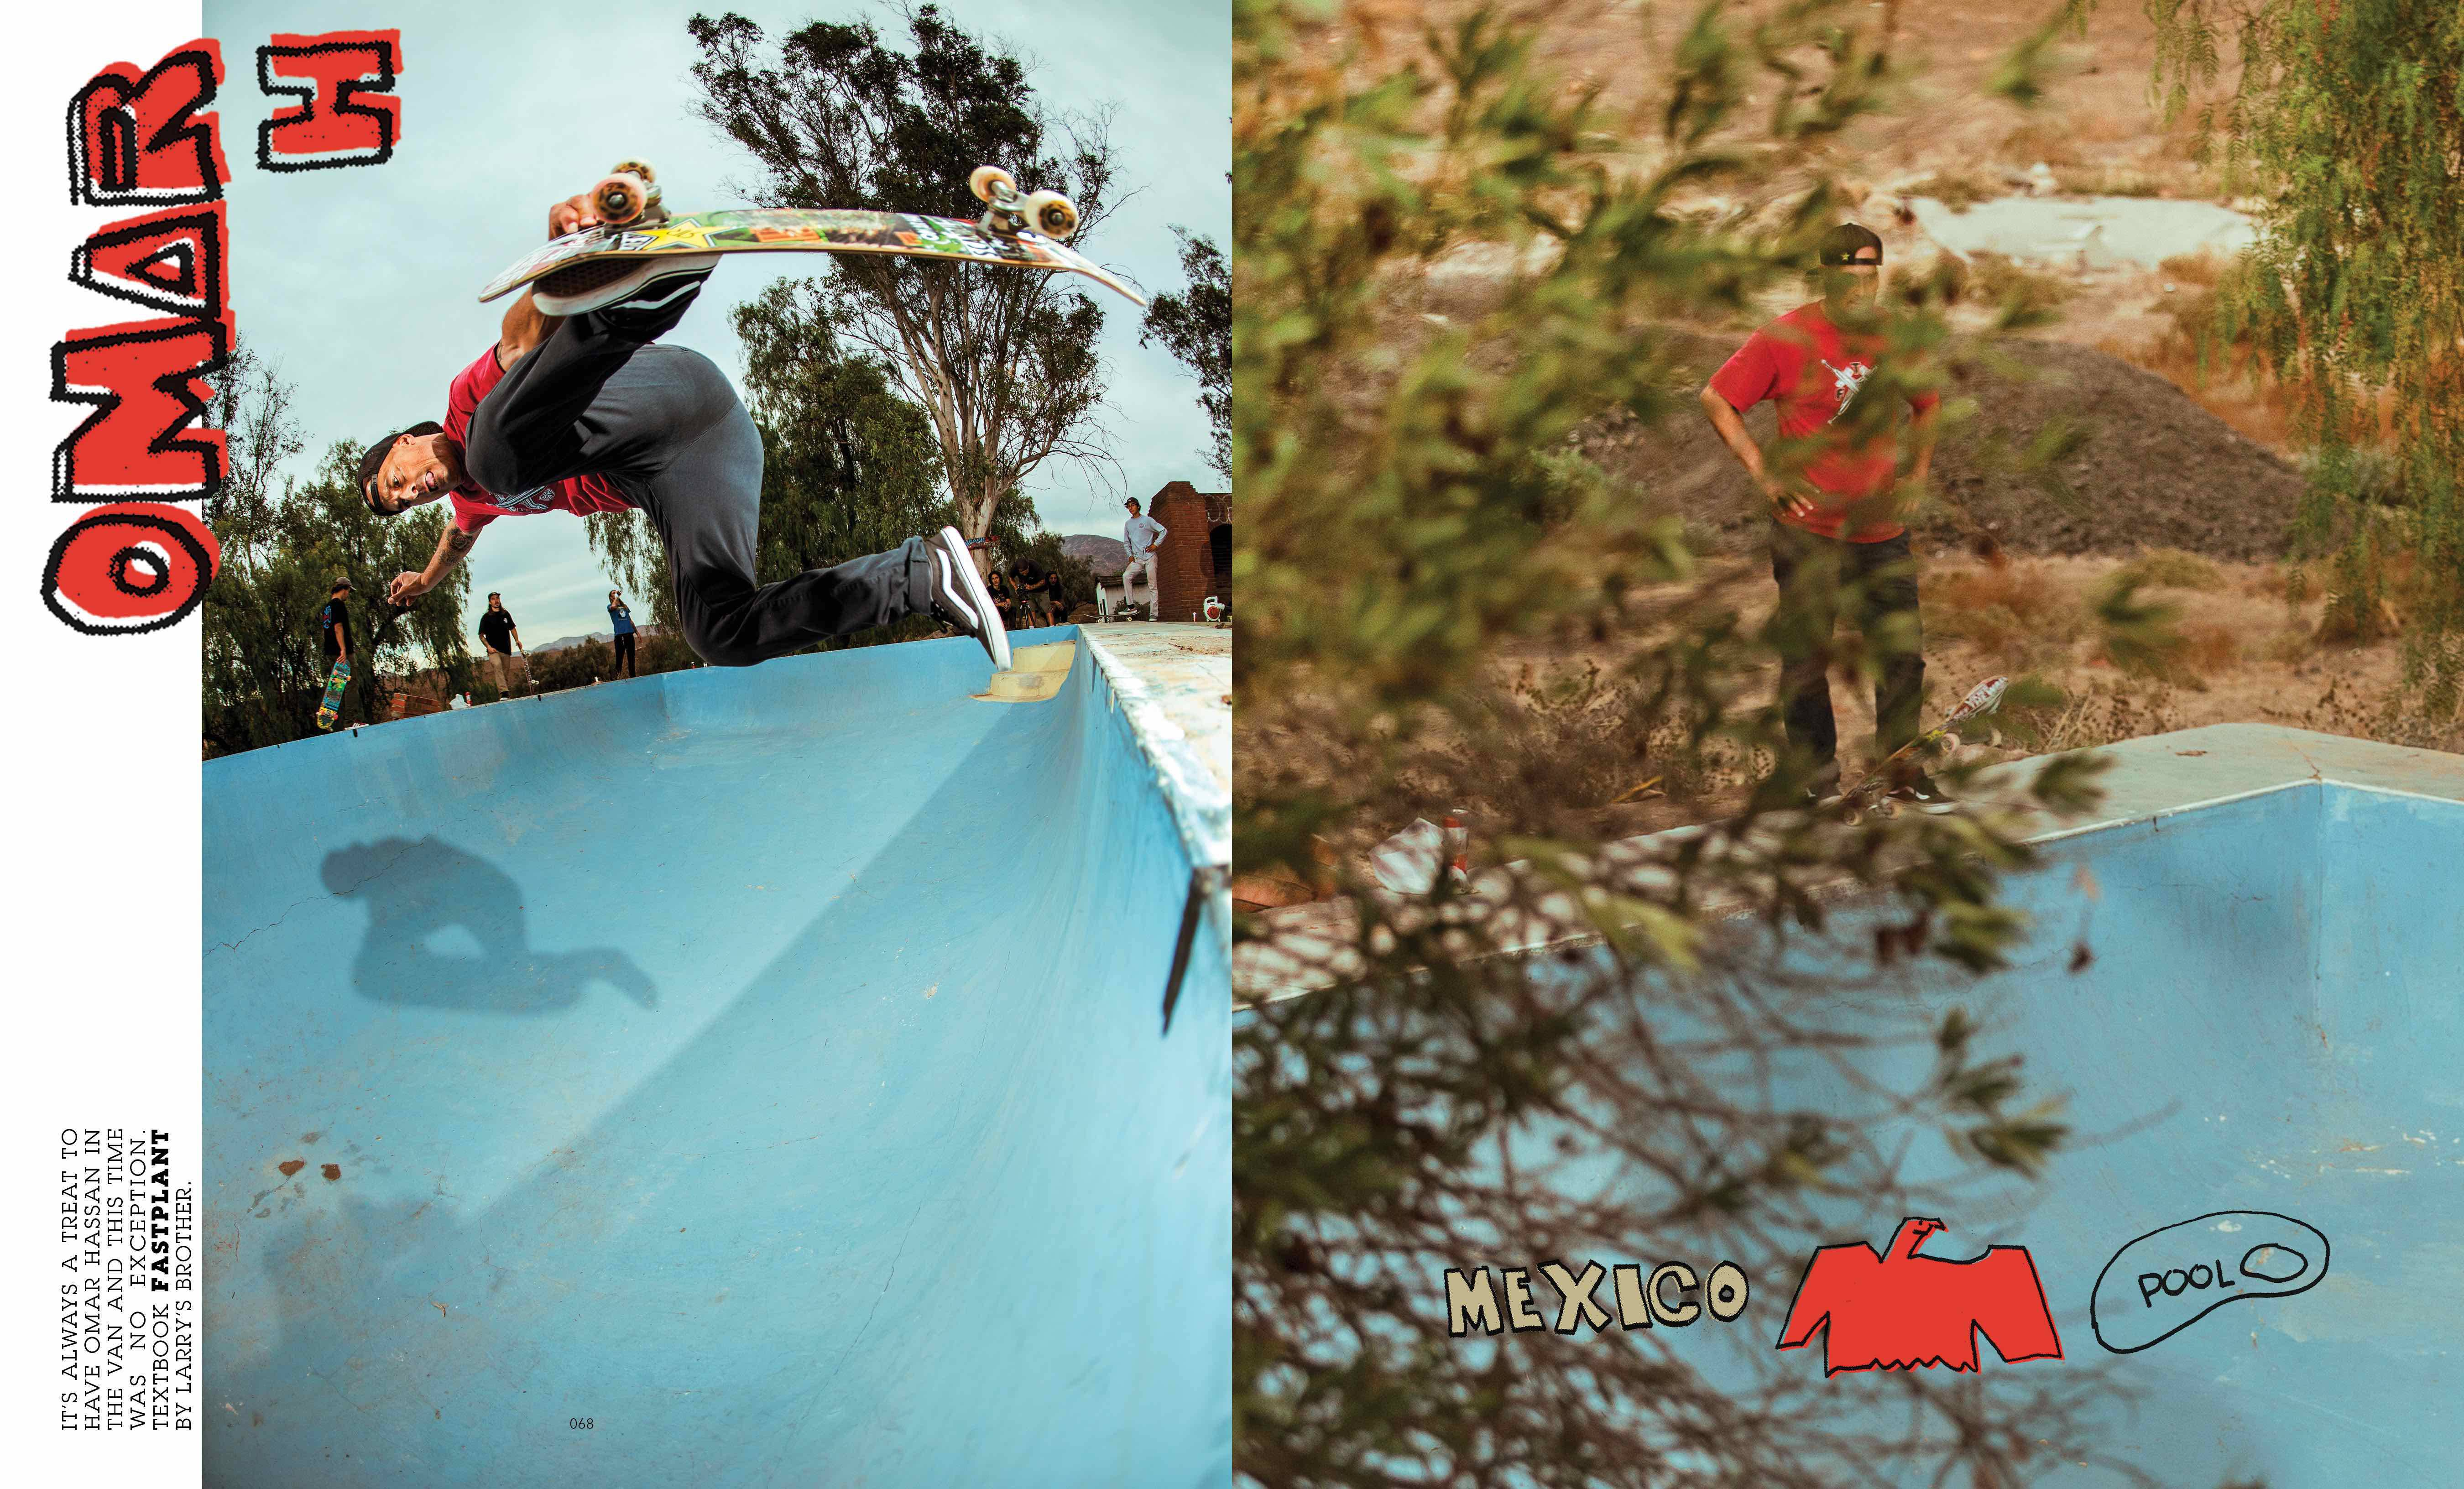 TECATE ON A WHIM -- Berrics Magazine Issue 2